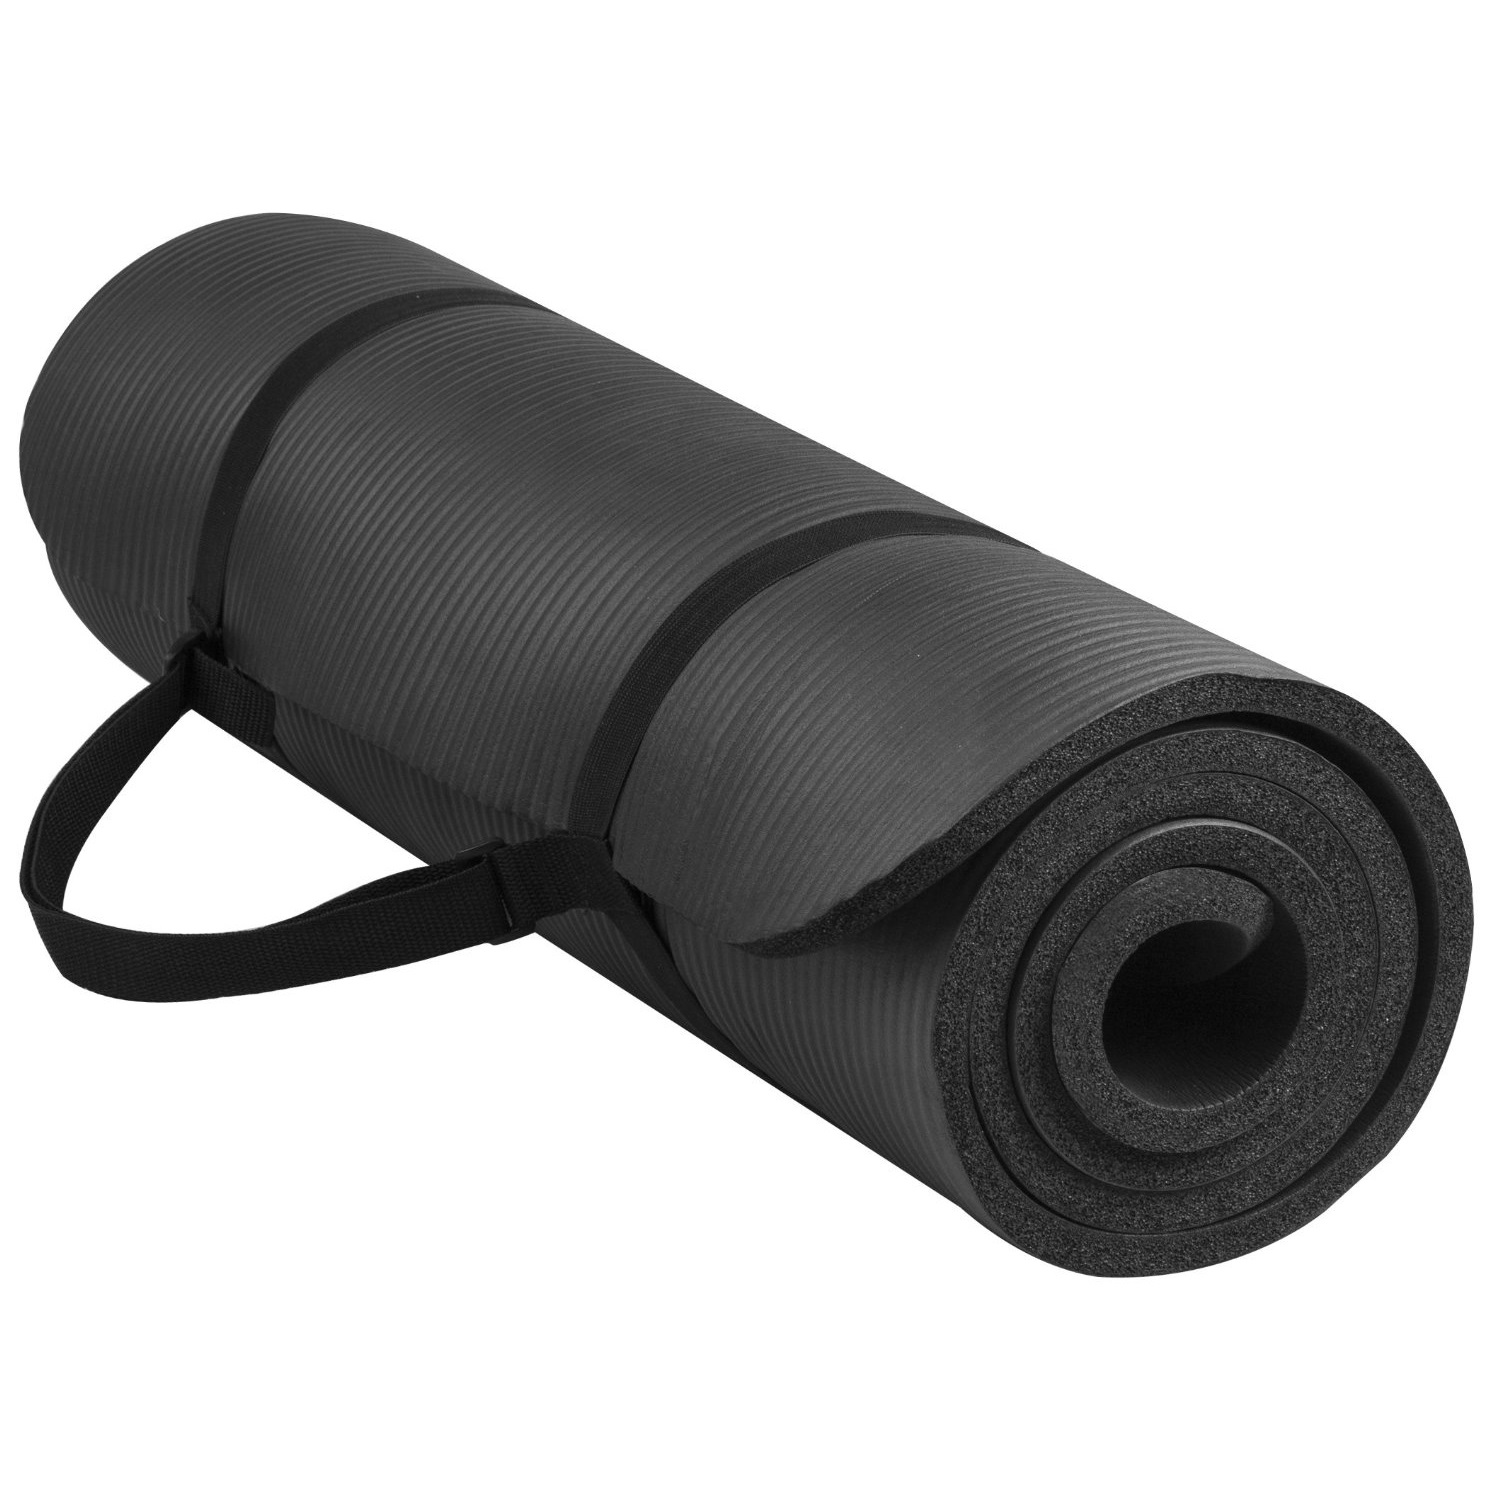 mats diy strap yoga fit mat therapy w straps max apartment